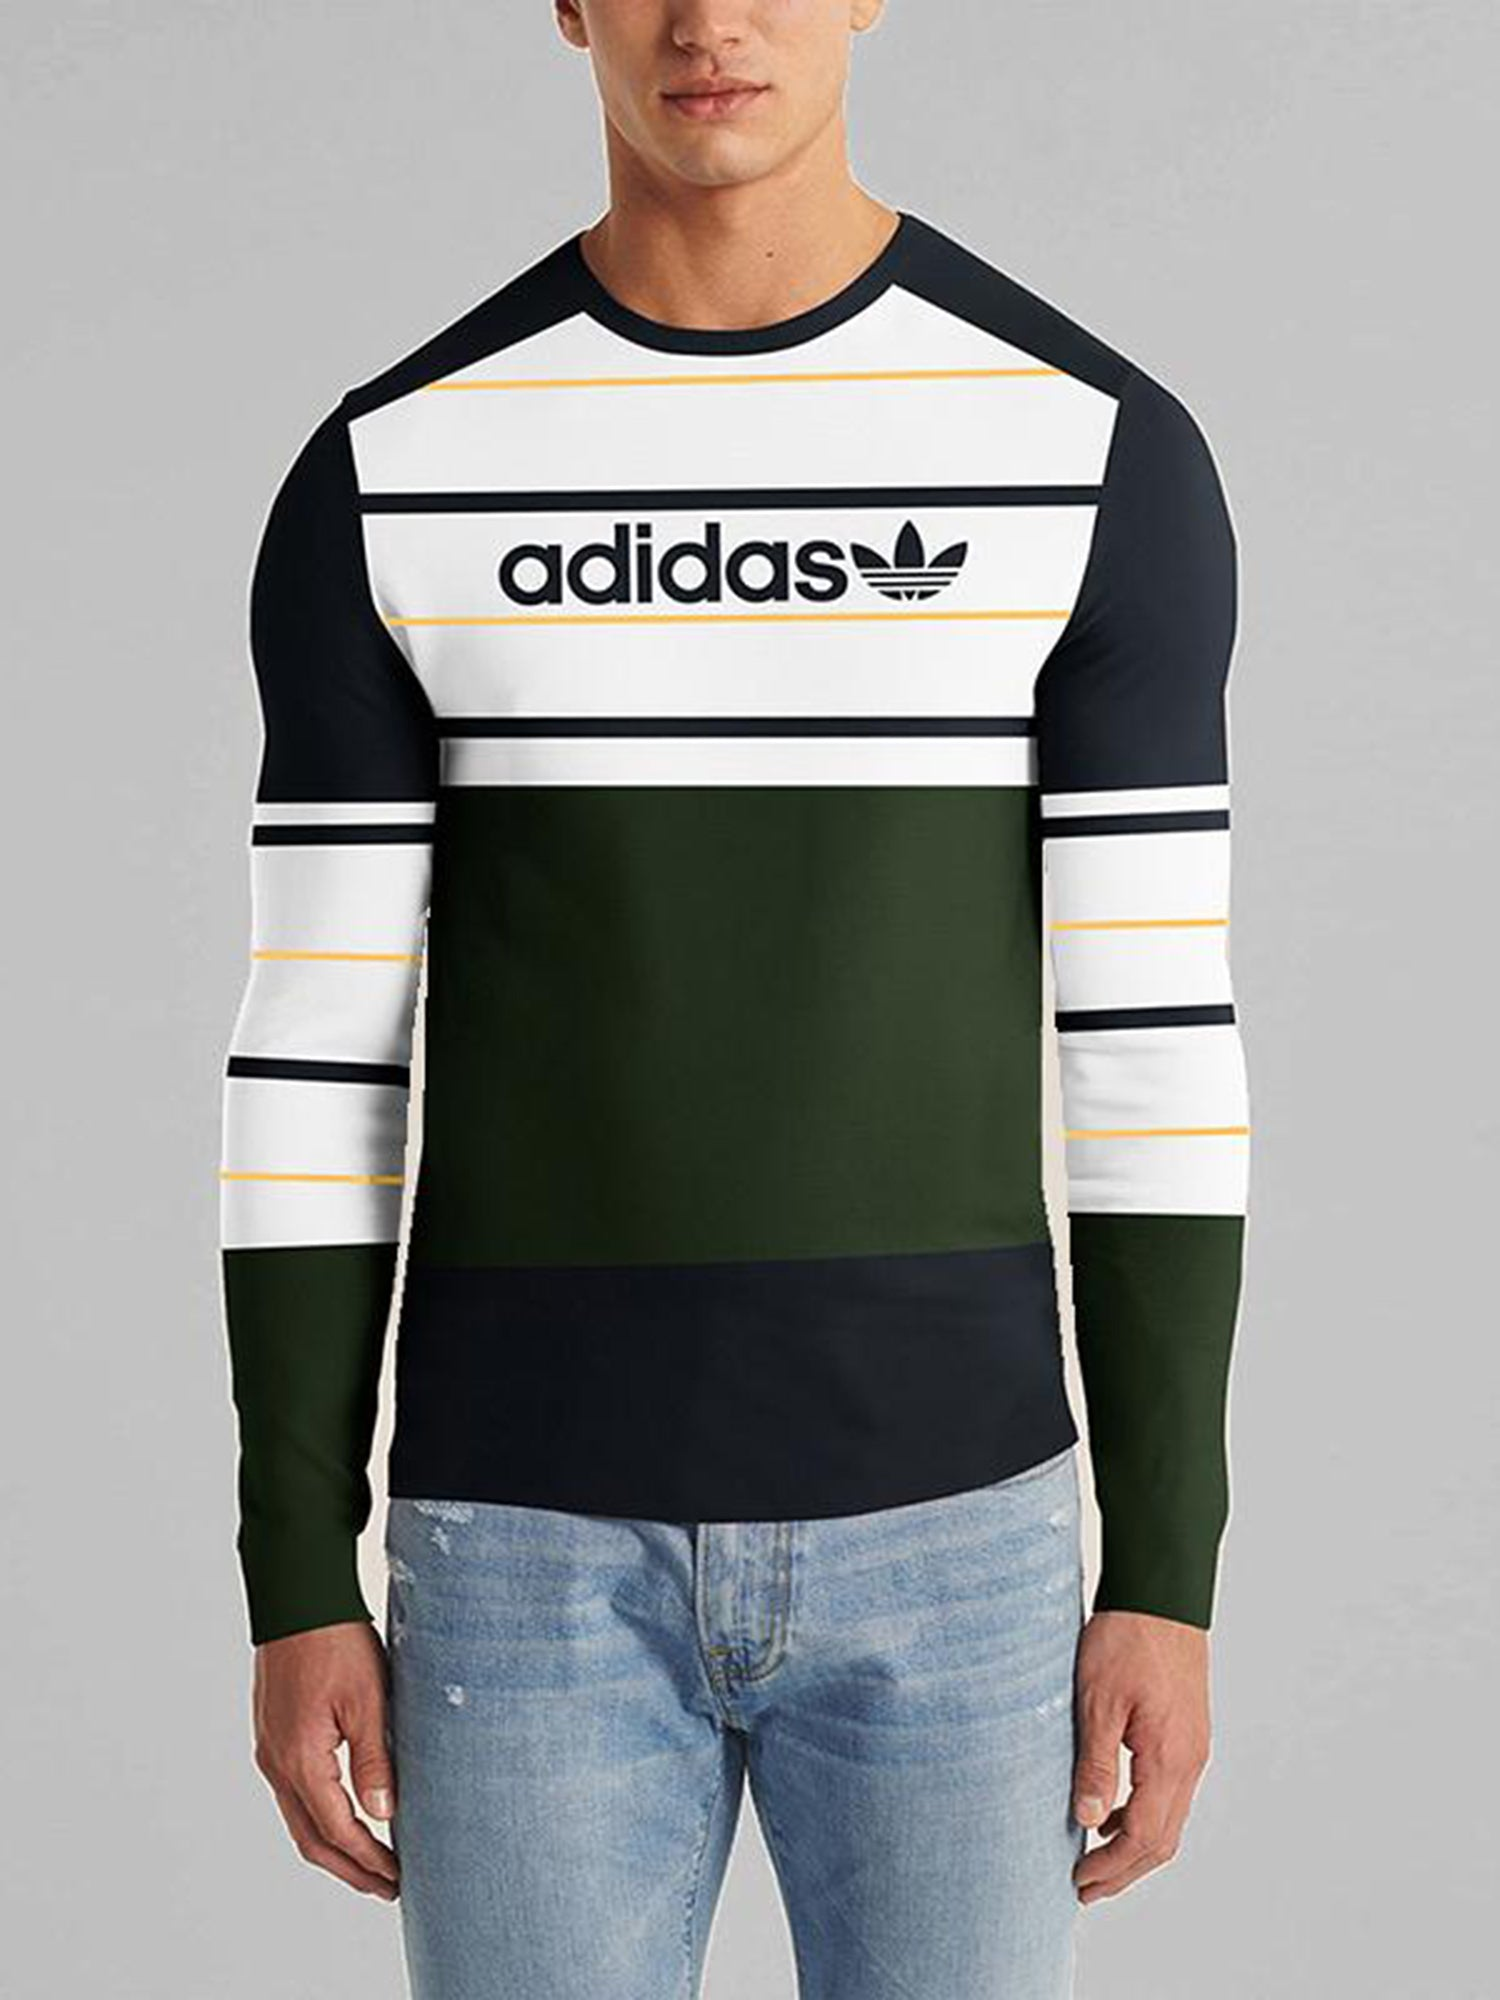 ADS Crew Neck Long Sleeve Tee Shirt For Men-Dark Navy -White-Green With Panels-NA10746